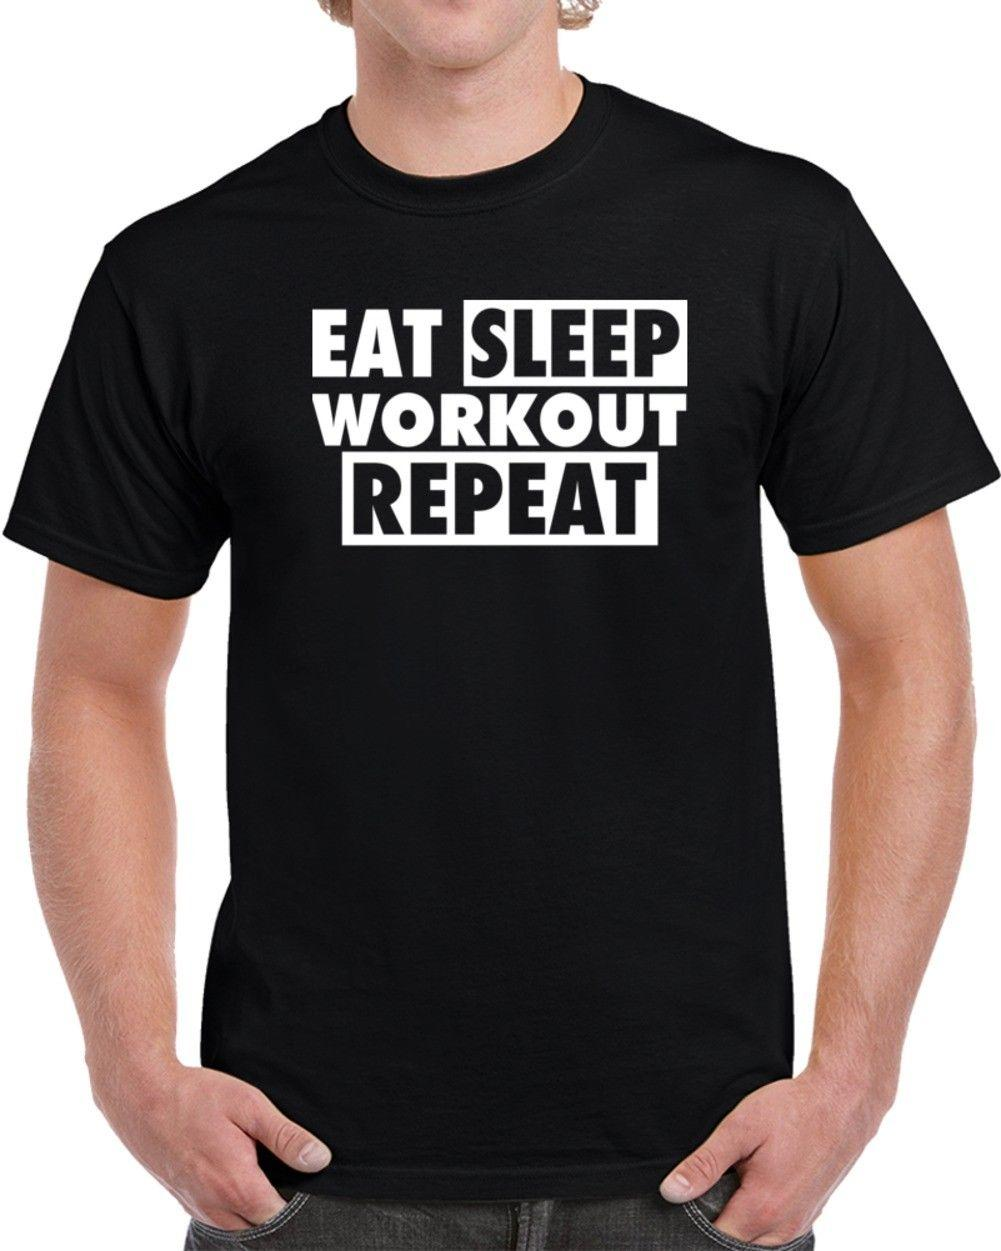 a83de308 Eat Sleep Workout Repeat Funny Gym Workout T Shirt Custom Printed Tops  Cotton Funny Unisex Casual Top Cotton Shirts White T Shirts From  Paystoretees, ...